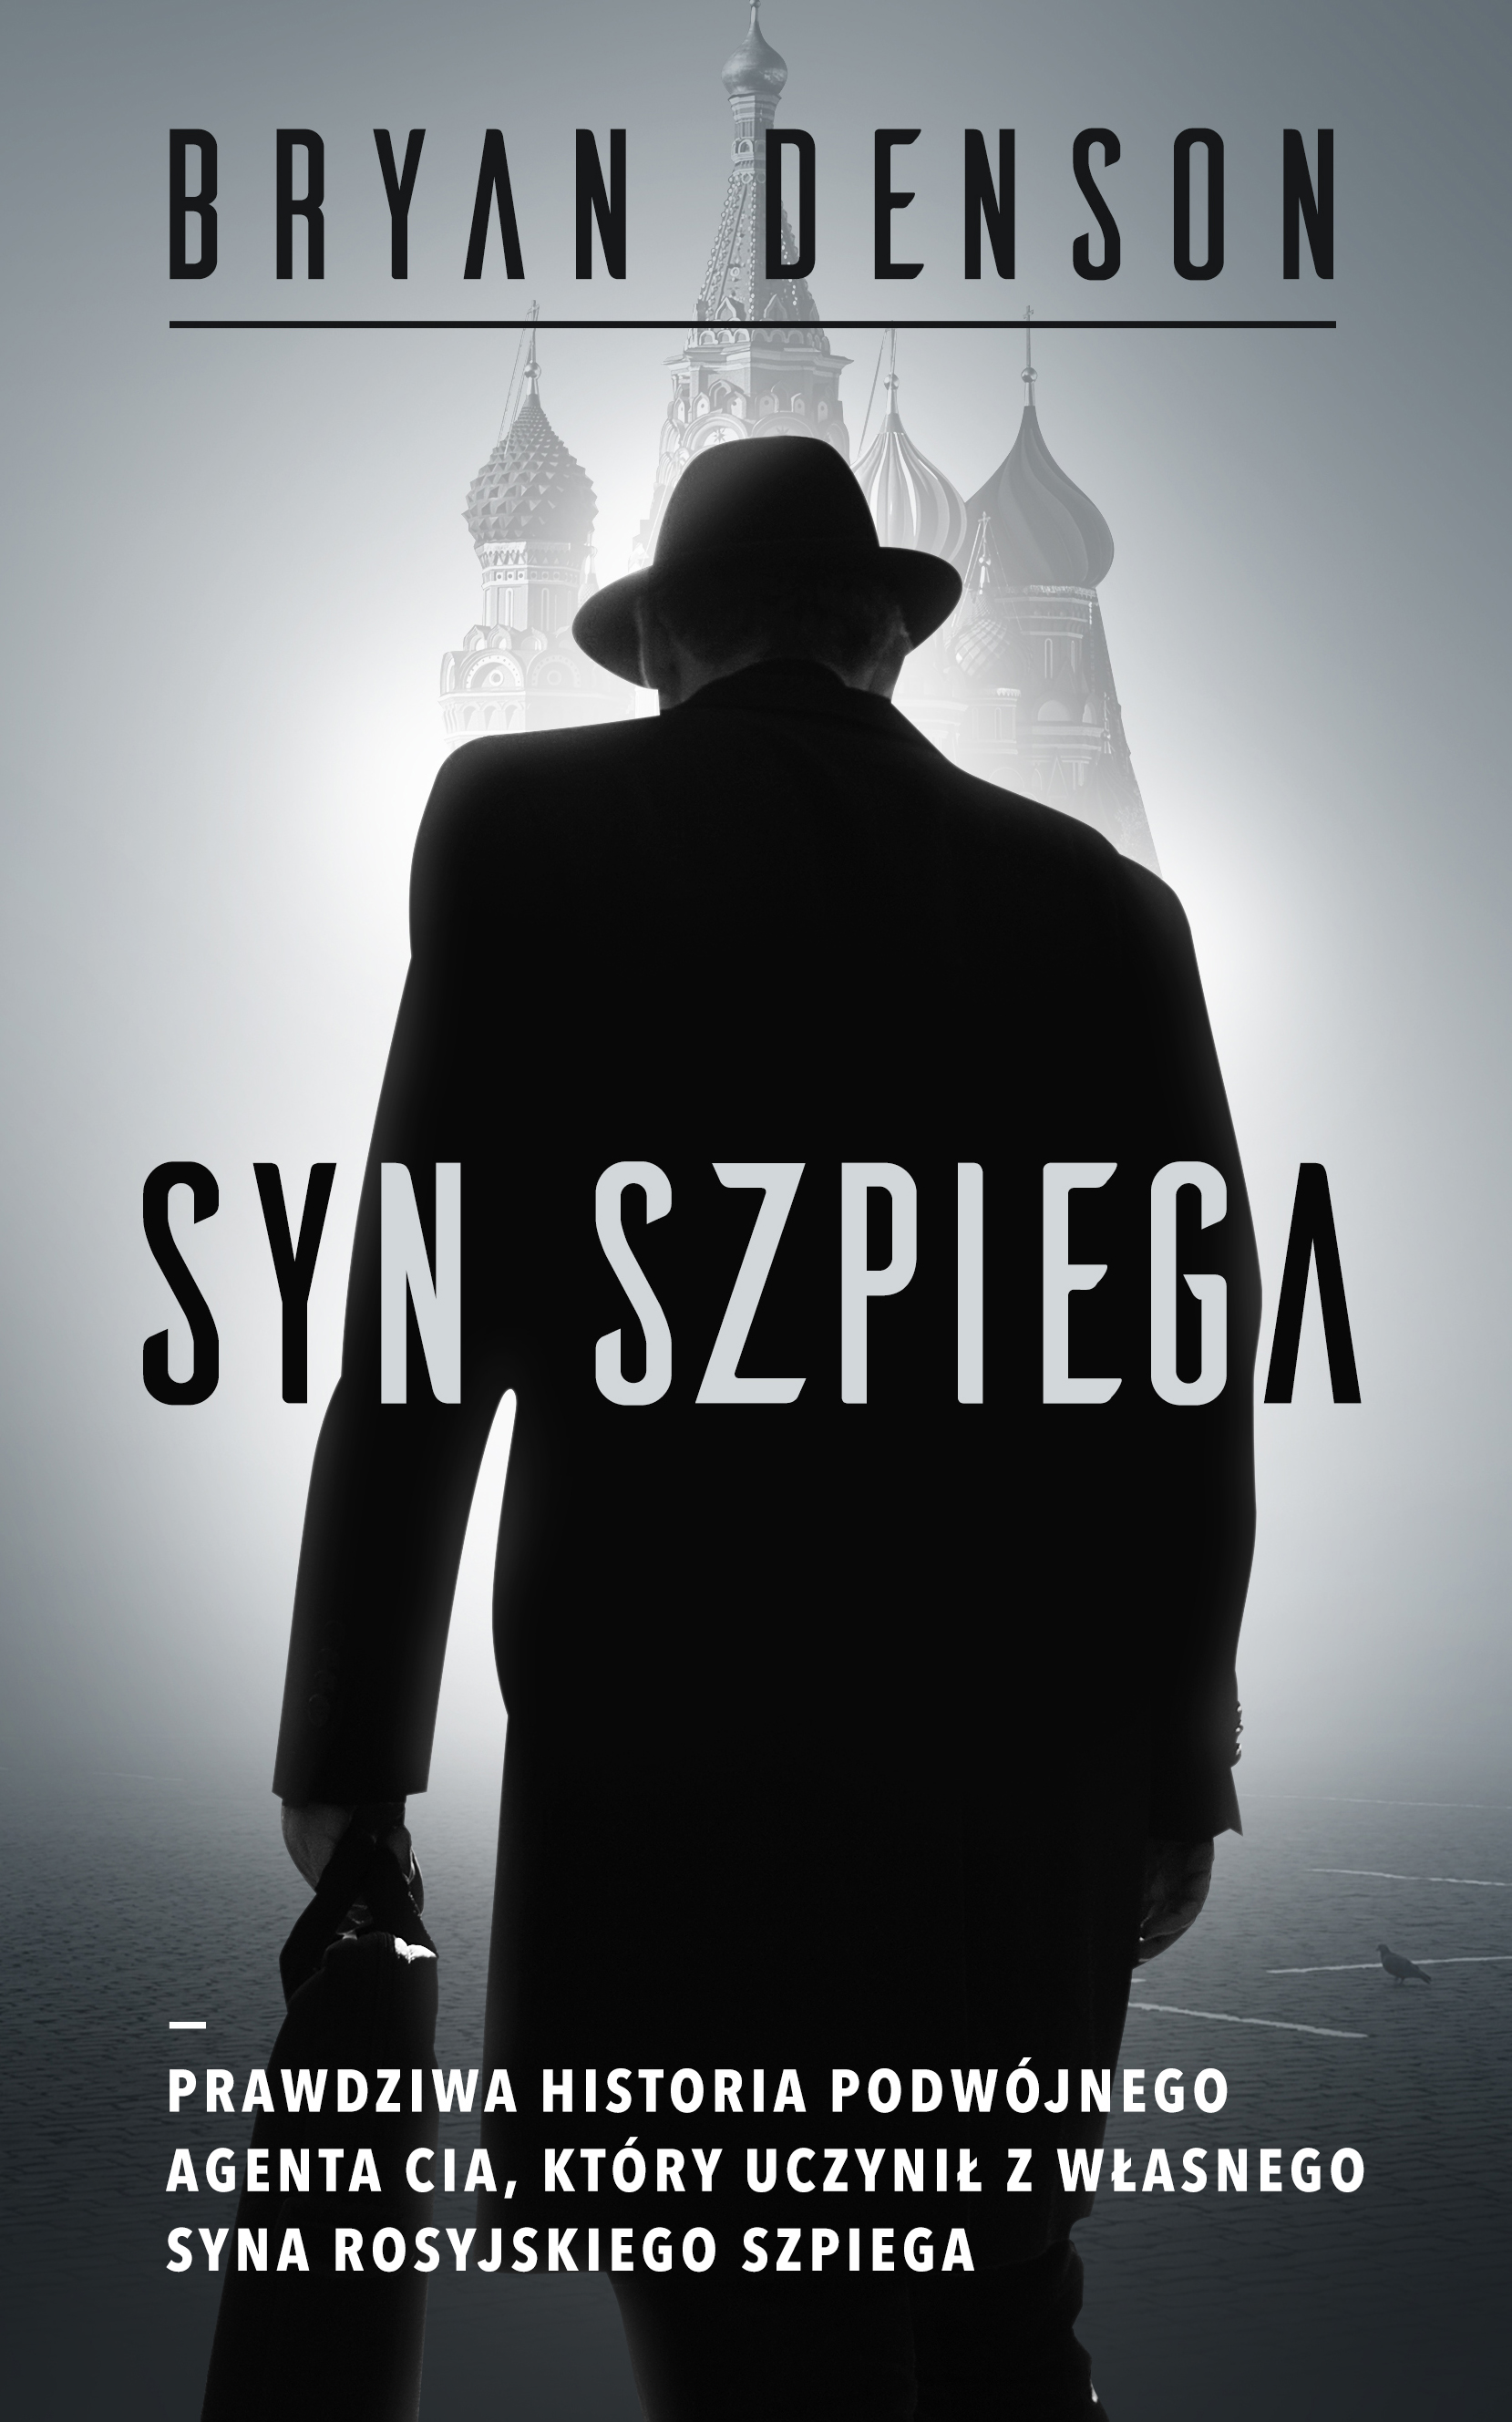 Czarna Owca's cover for Syn Szpiega, released 2015.